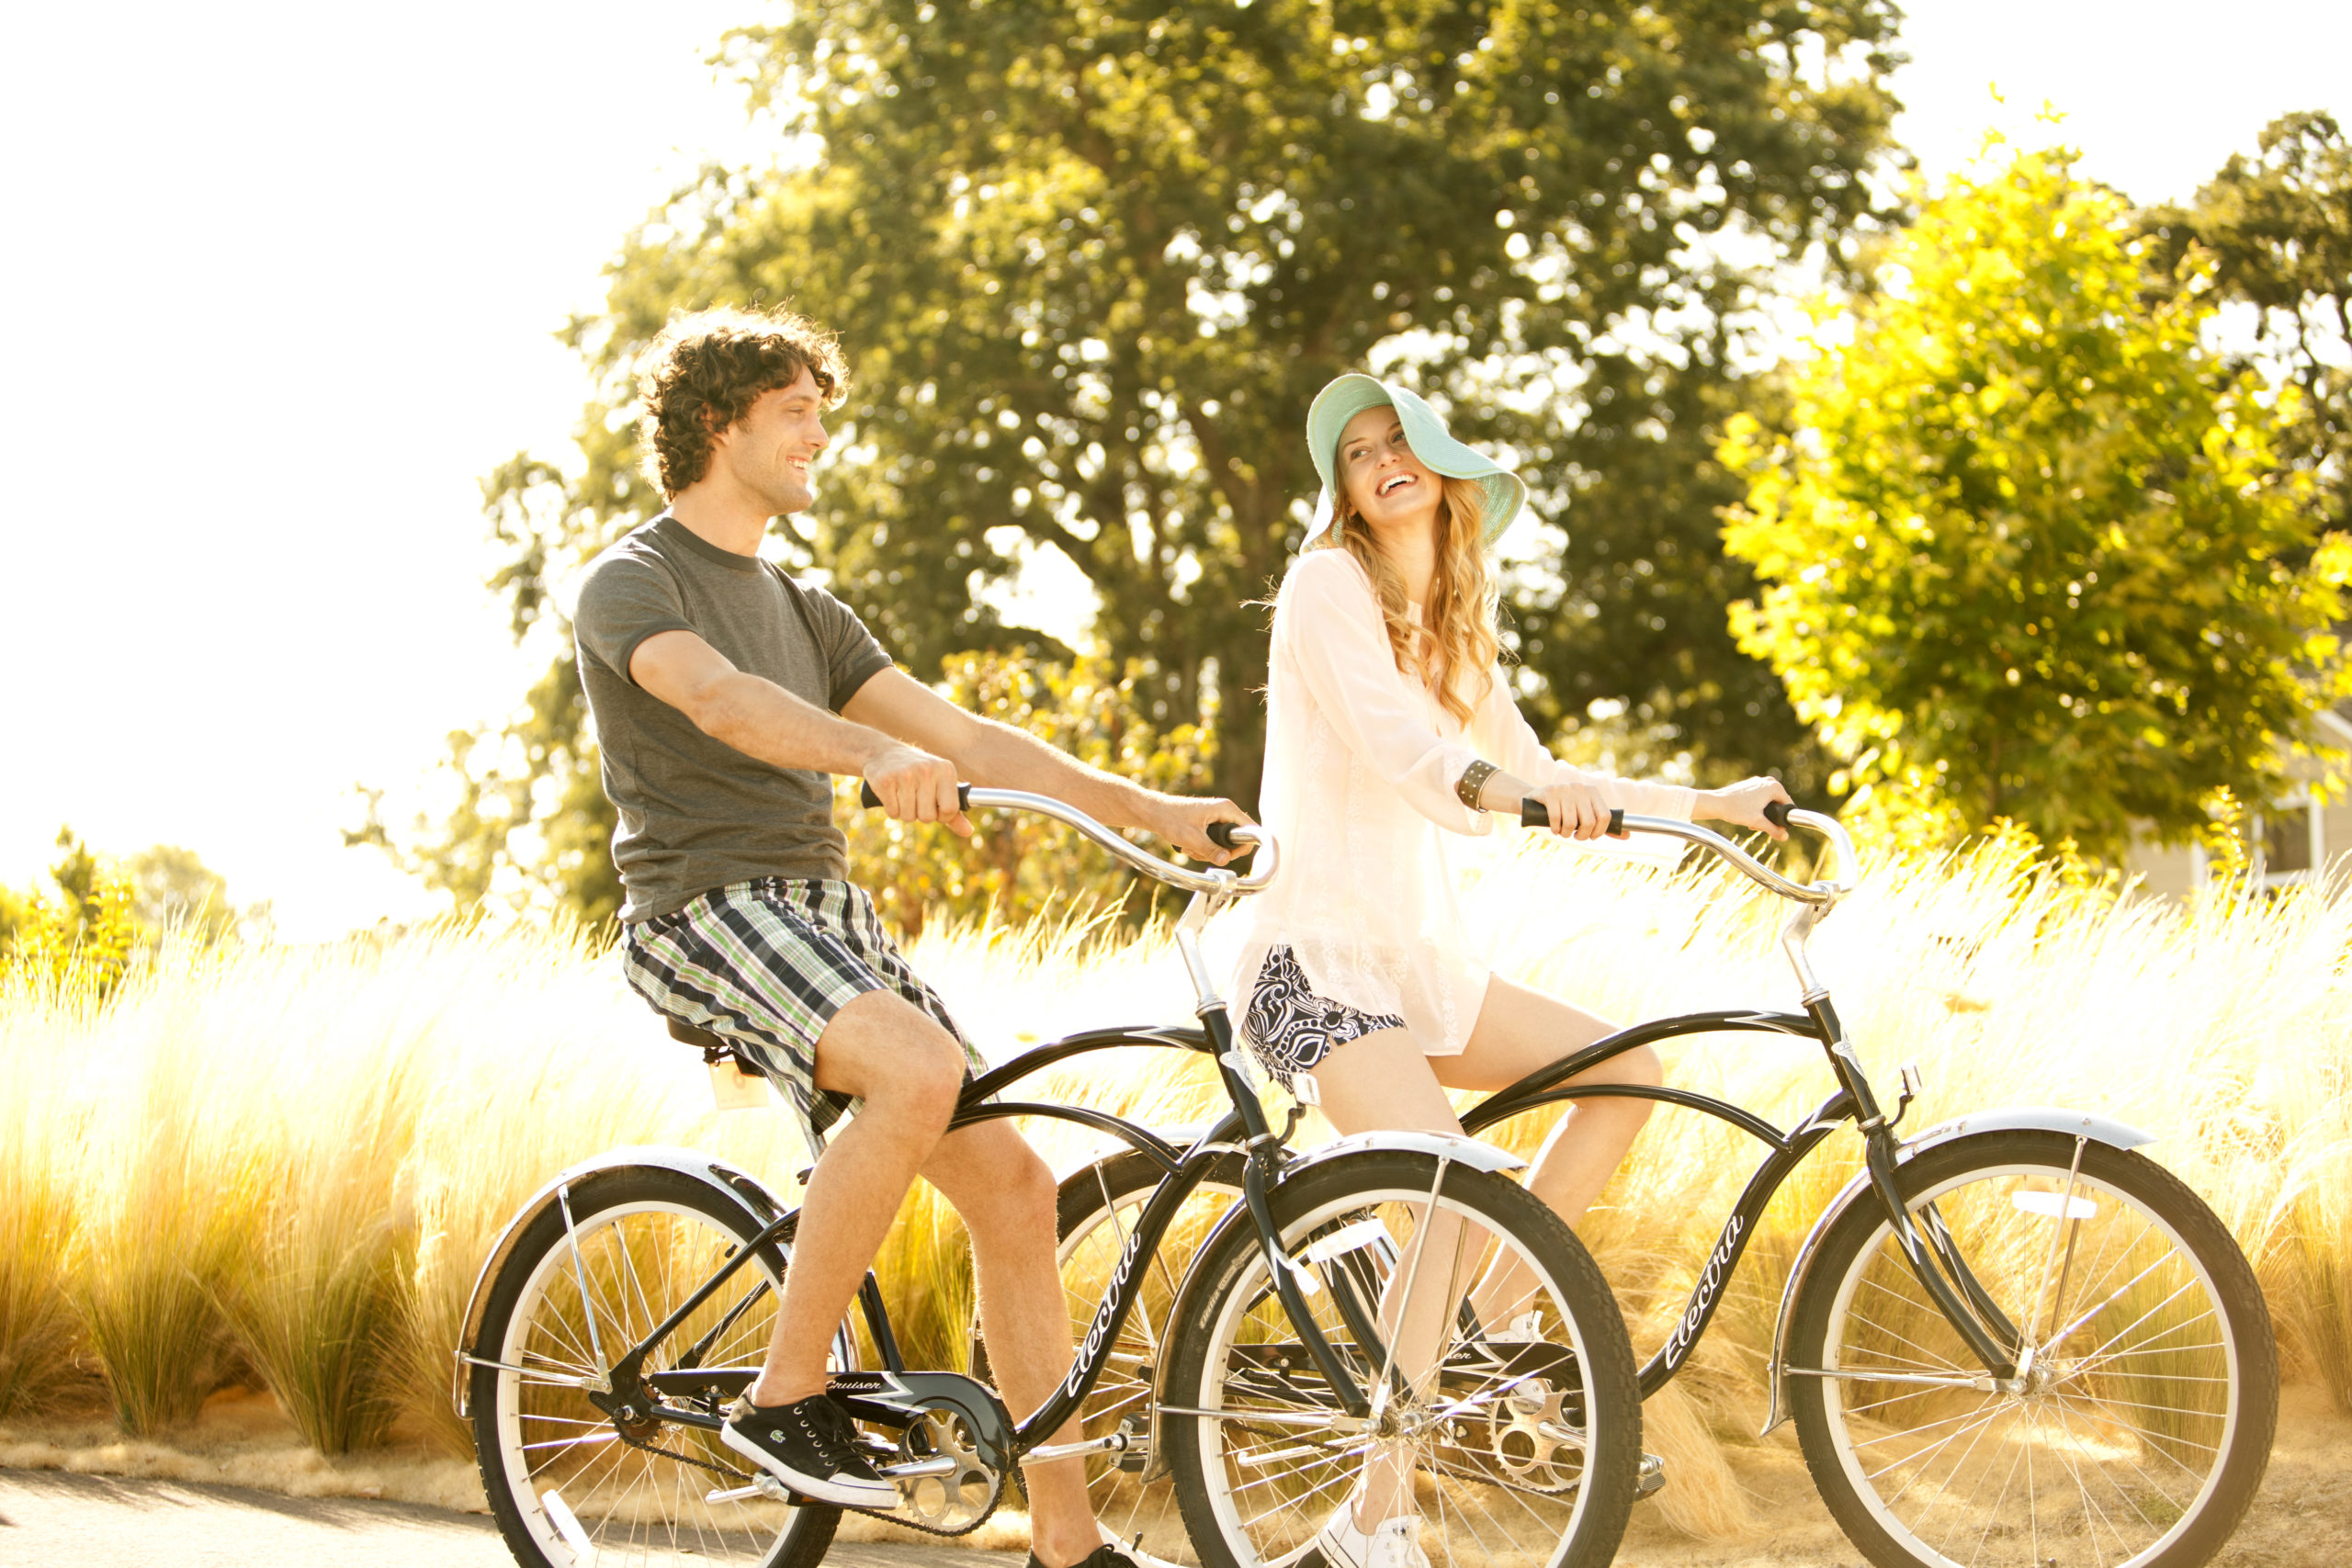 A date on bikes